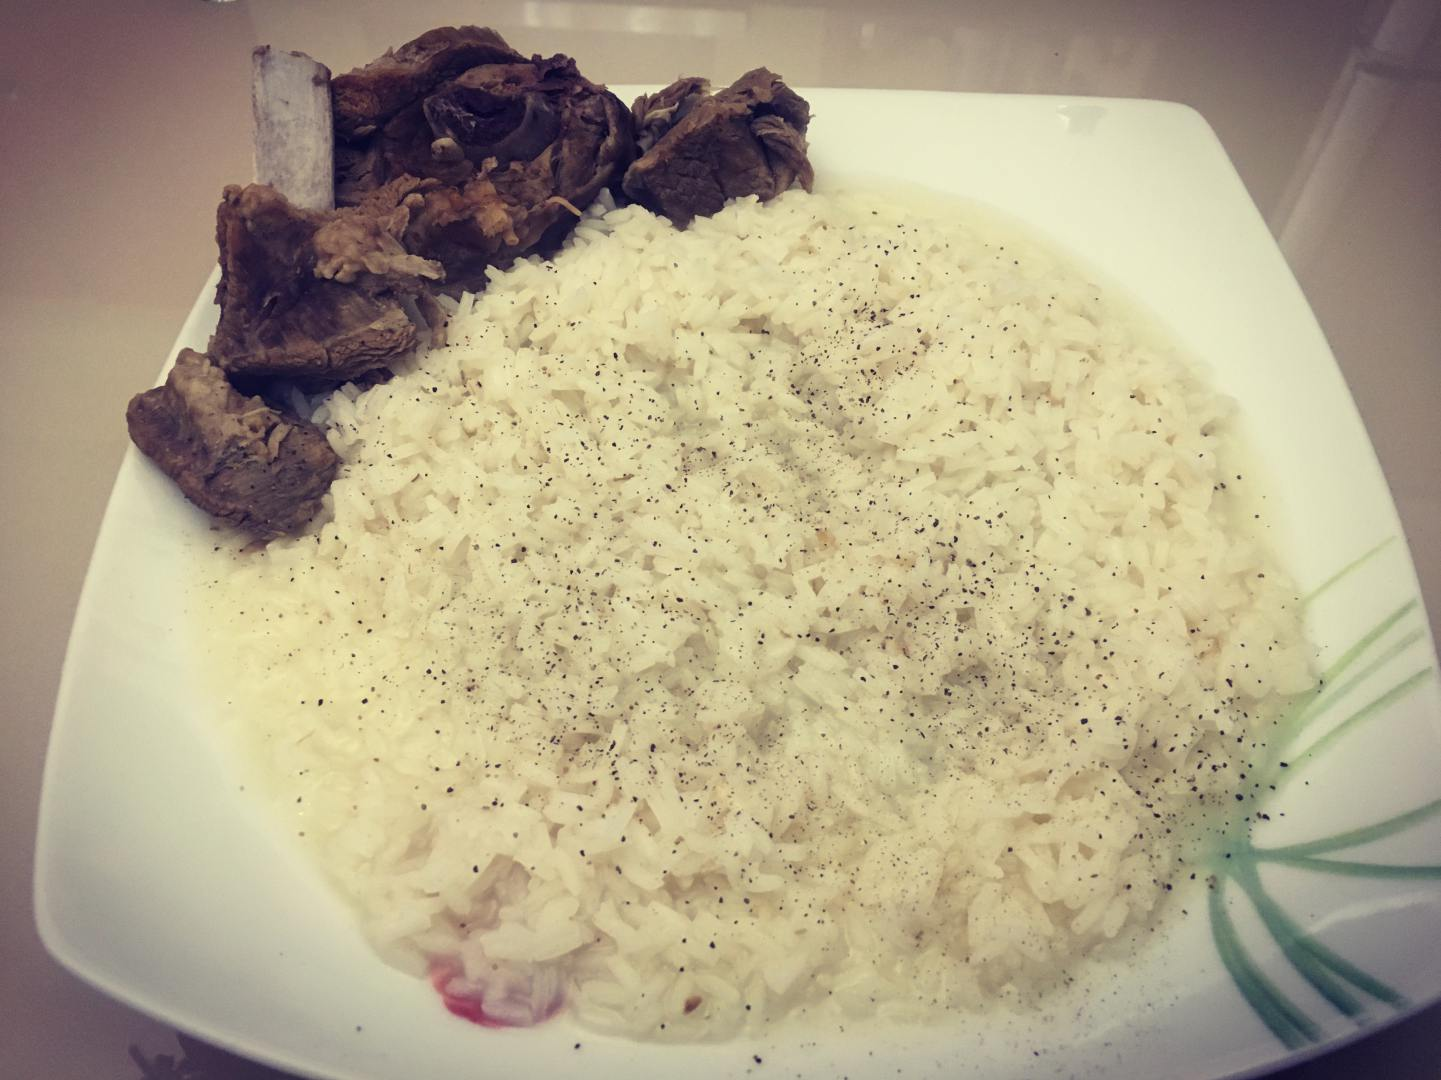 Rice, boiled in the broth of goat's or ewe's meat